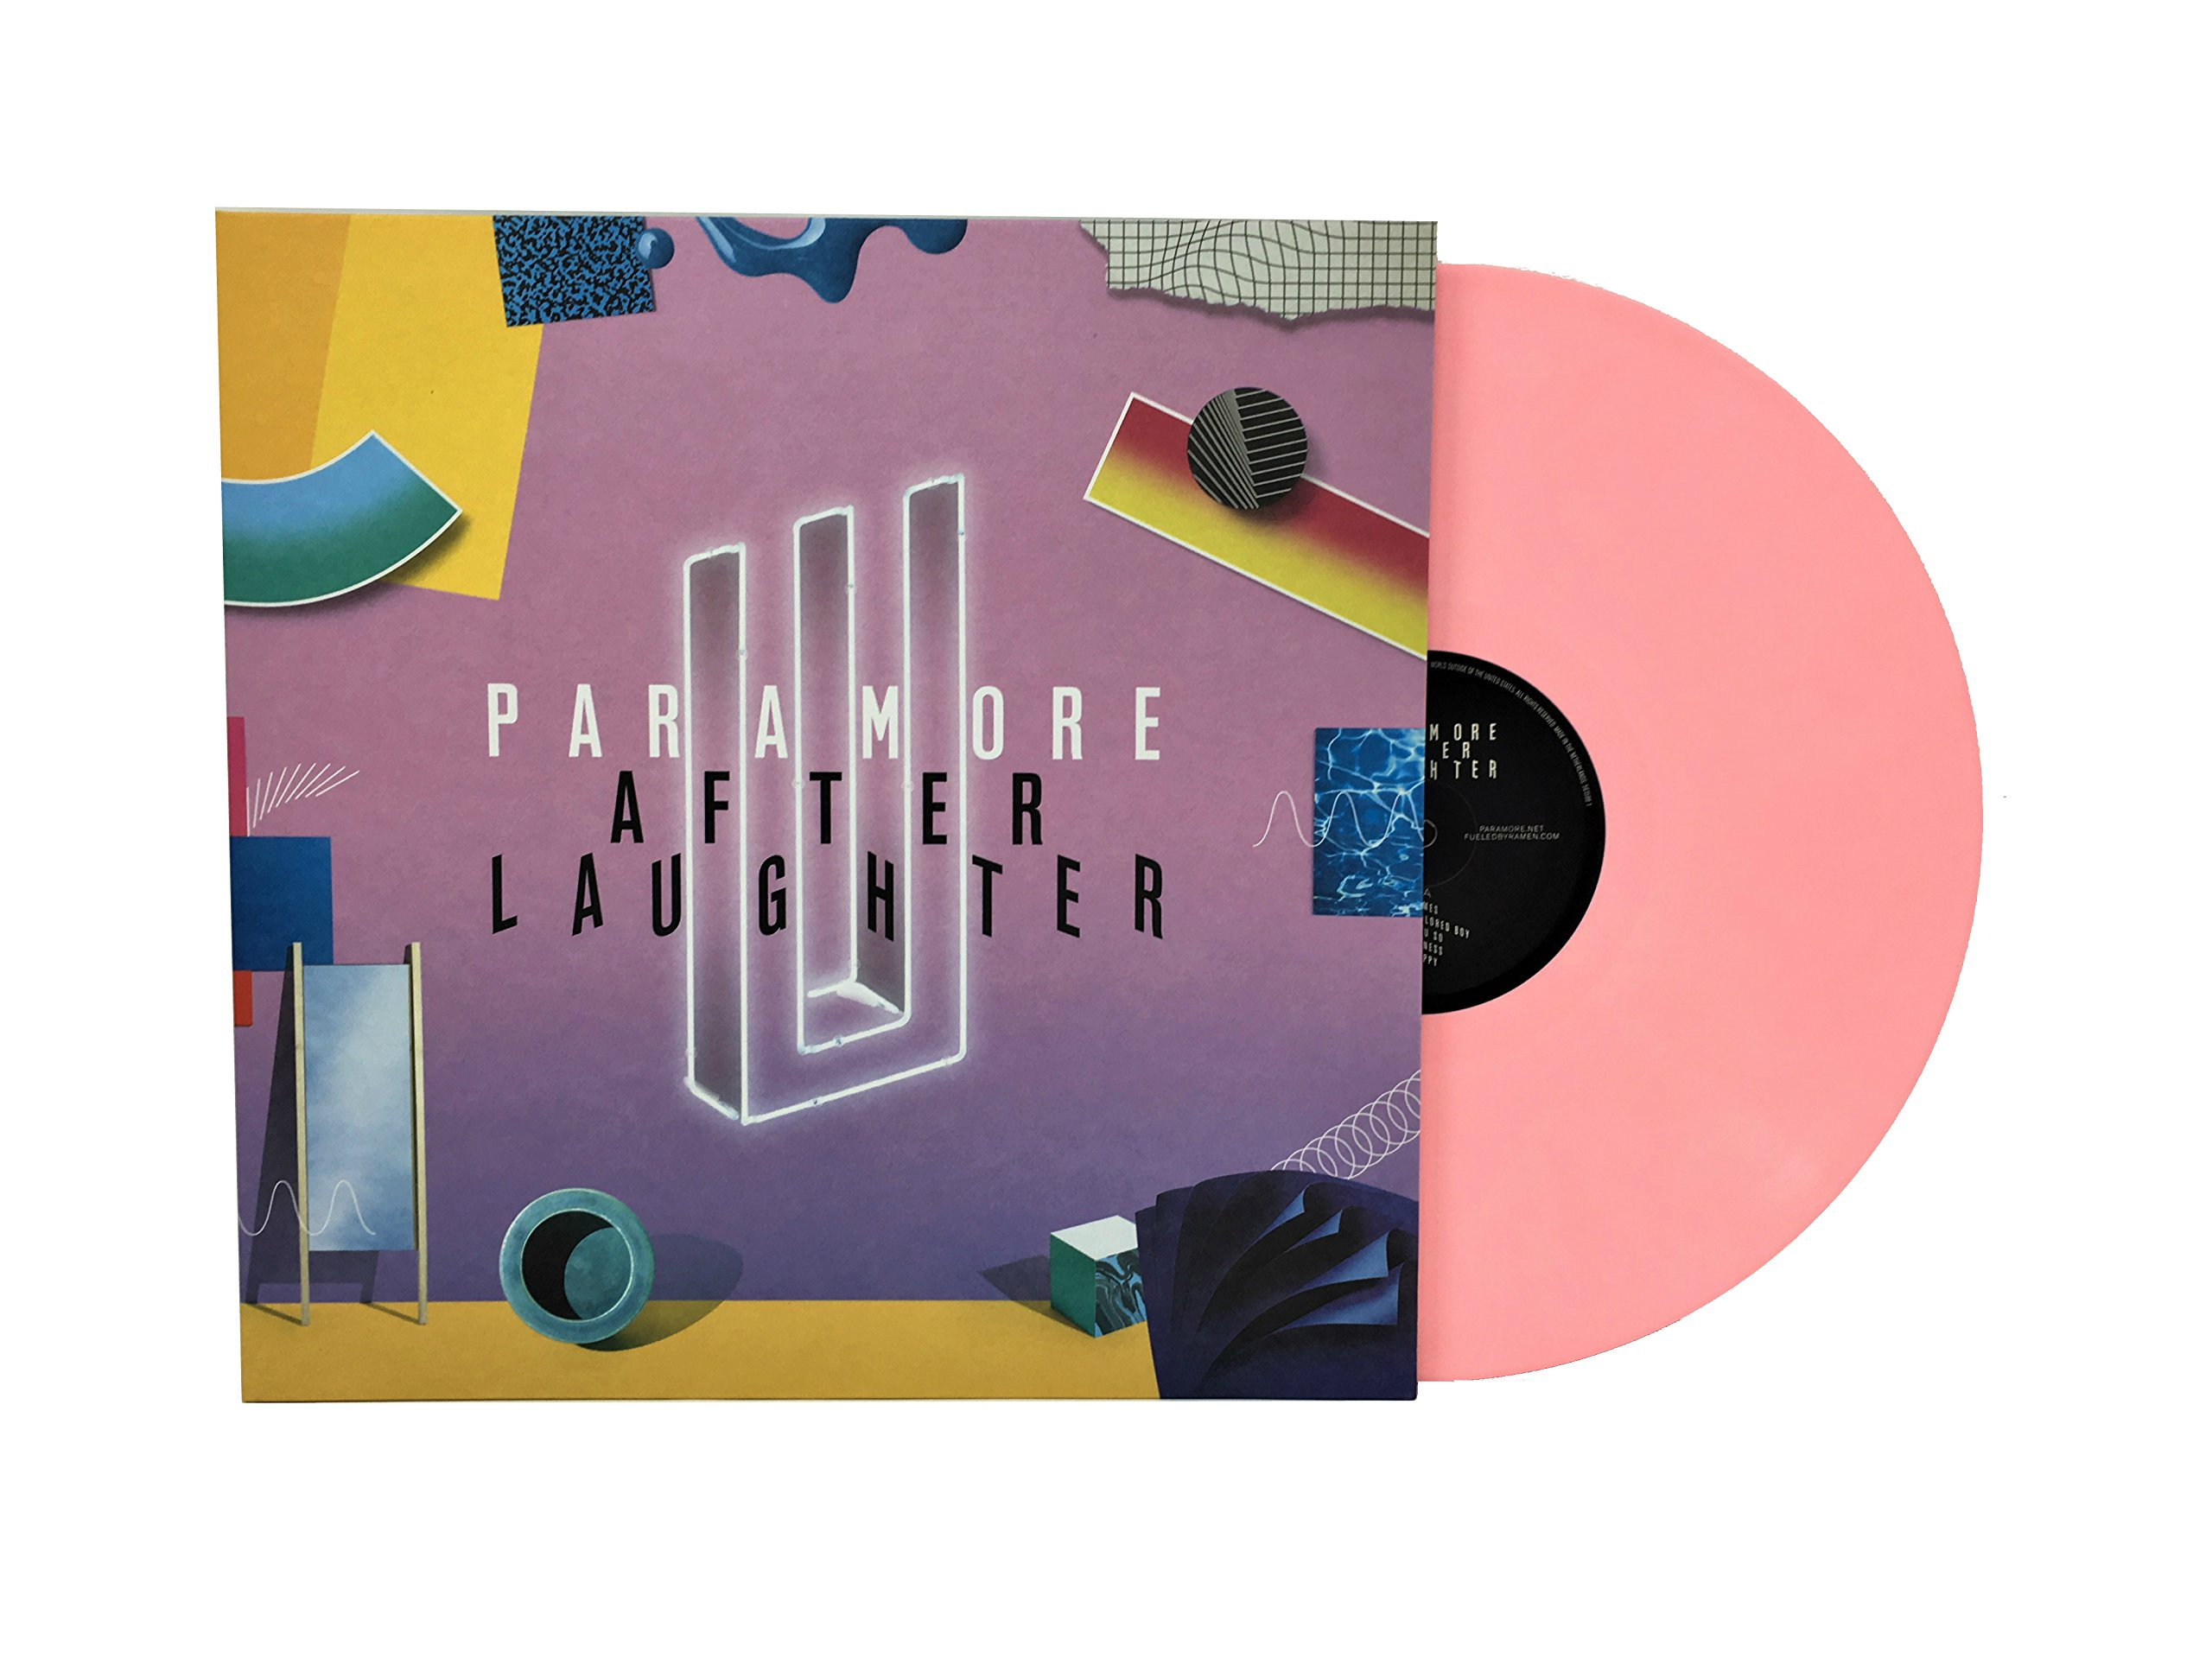 After Laughter (Limited Edition Pink Colored Vinyl) by Fueled by Ramen